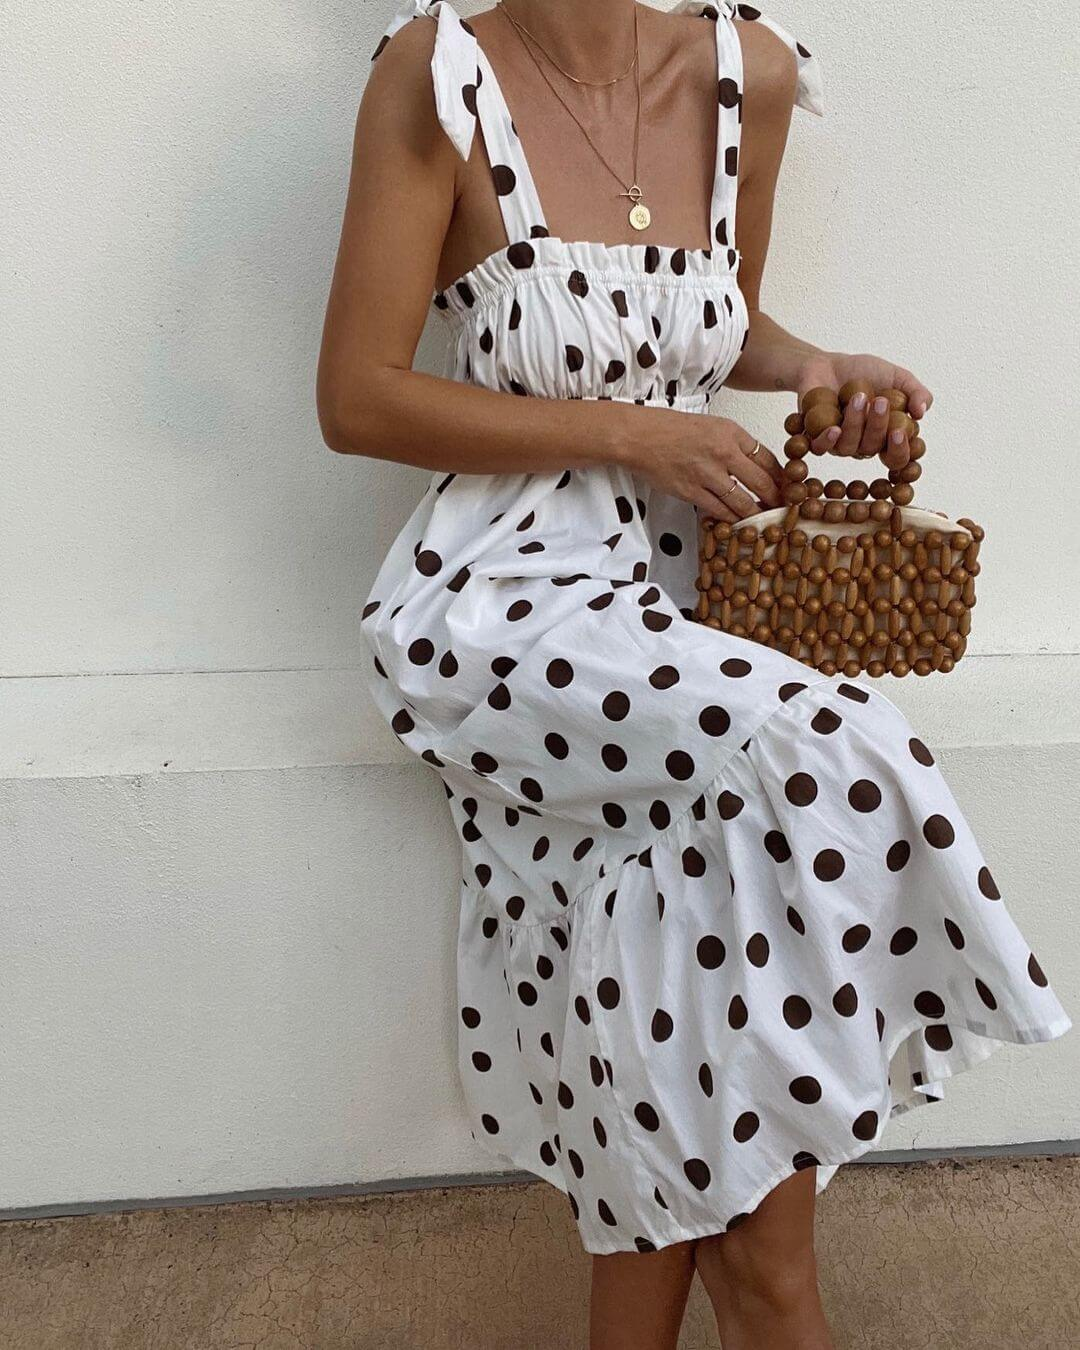 10 Effortless Outfits For Labor Day Weekend To Buy ASAP